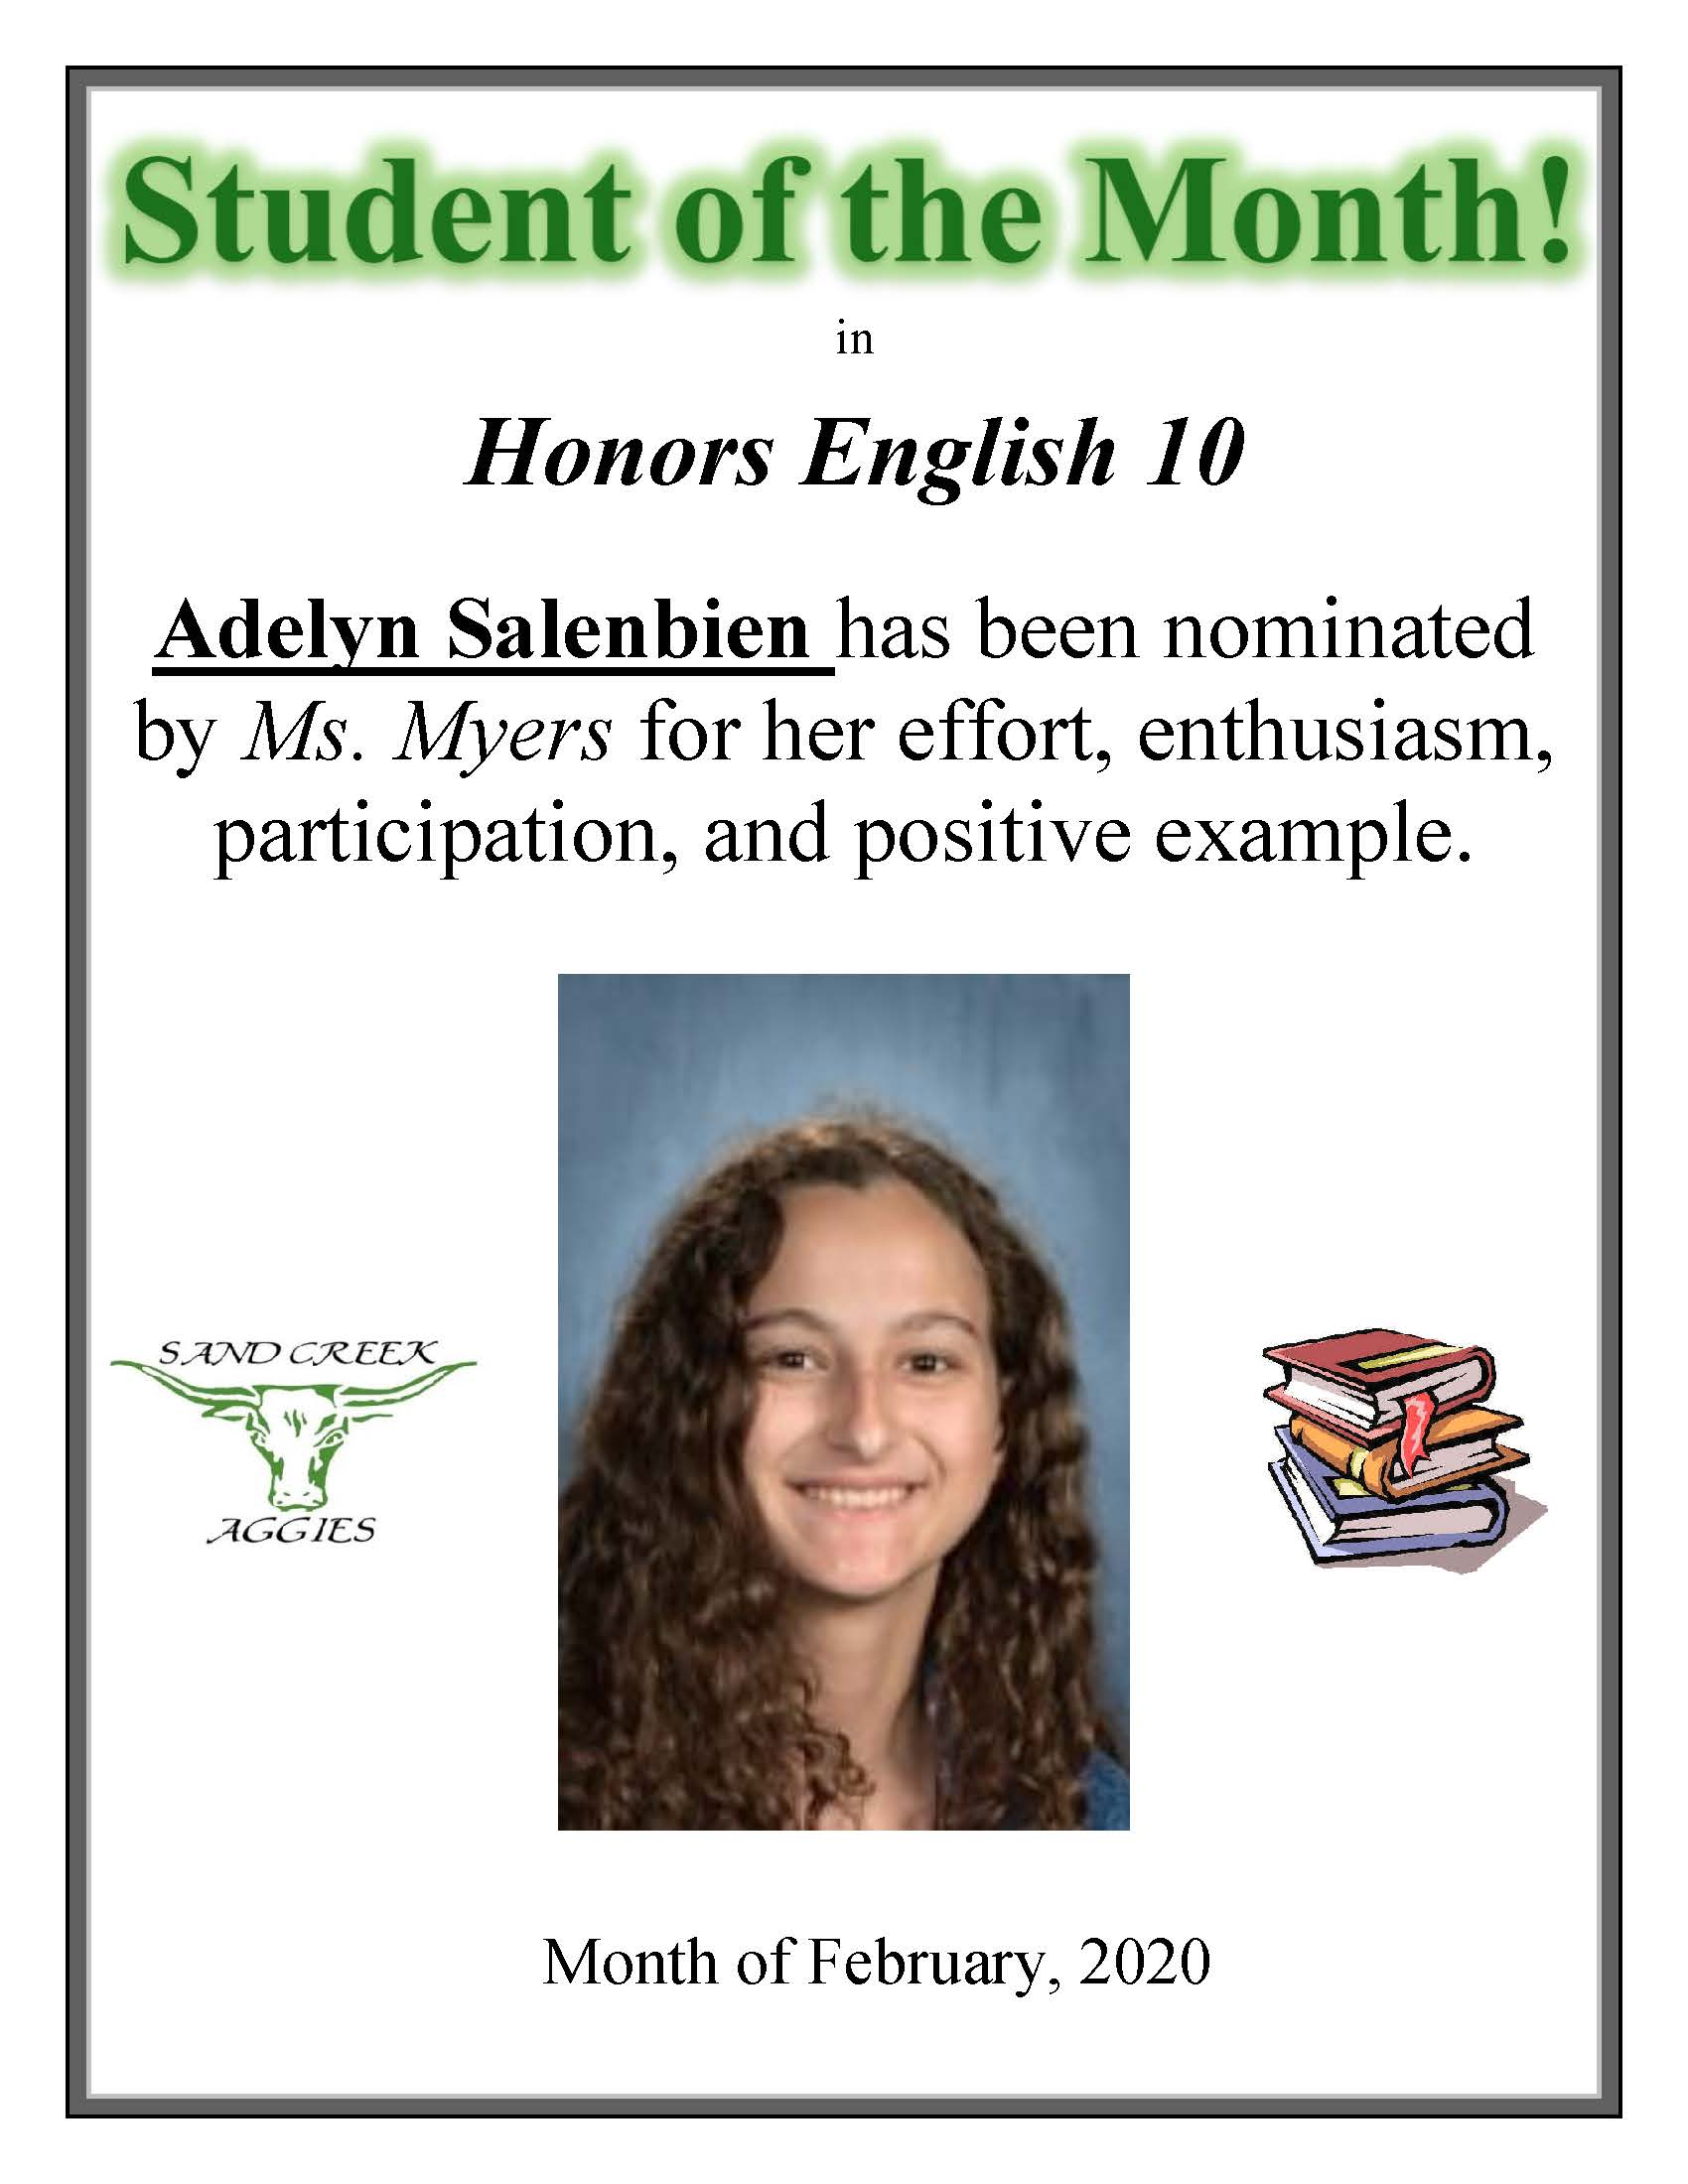 Student nominated for Student of the Month in January 2020.